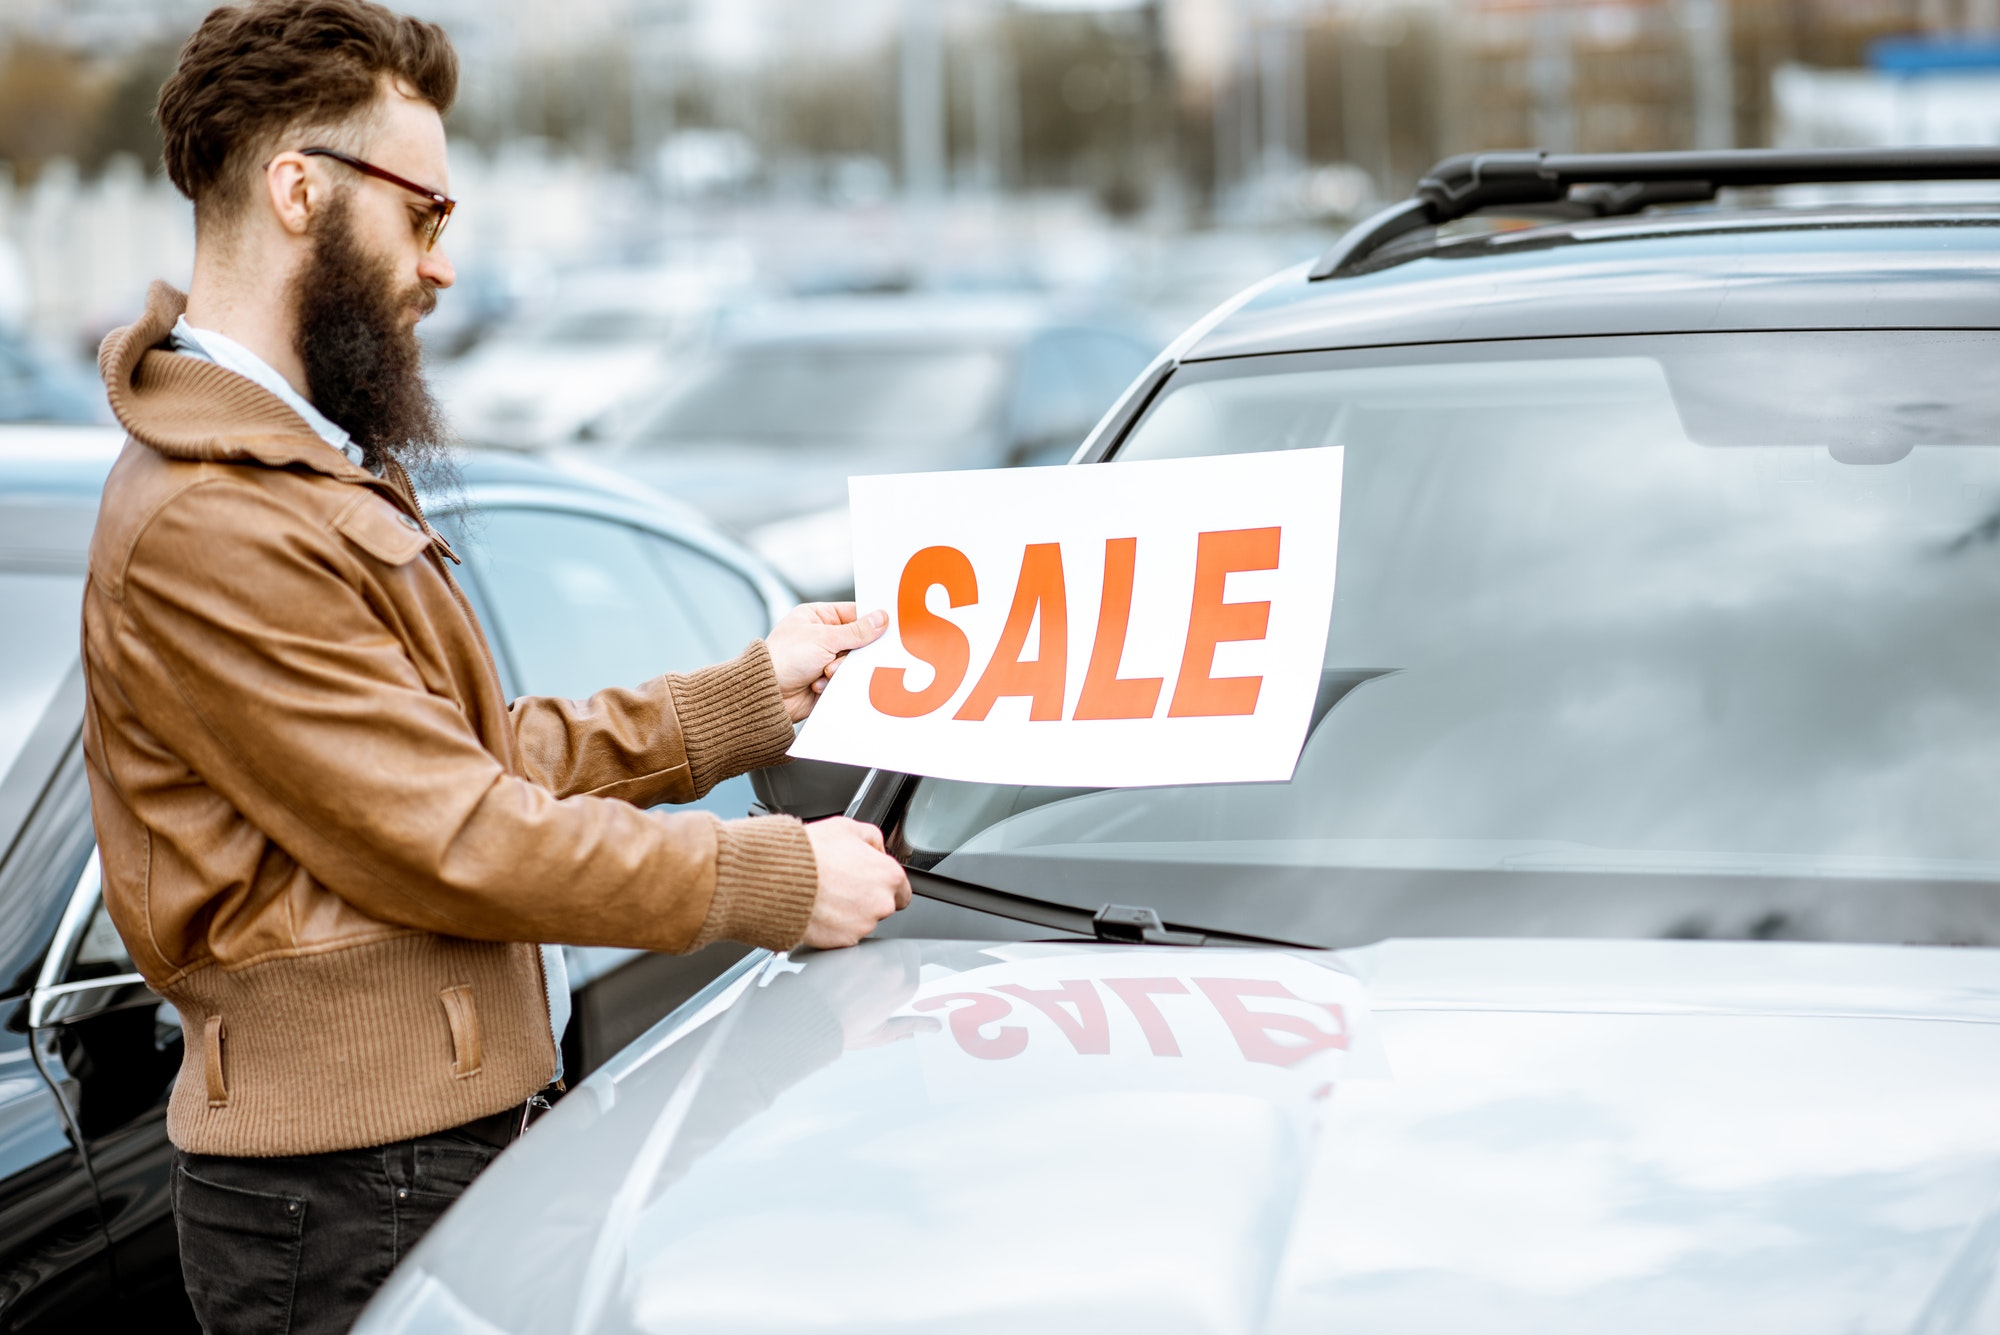 How To Write A Good Online Ad To Sell A Junk Car. Add For Sale Sign.